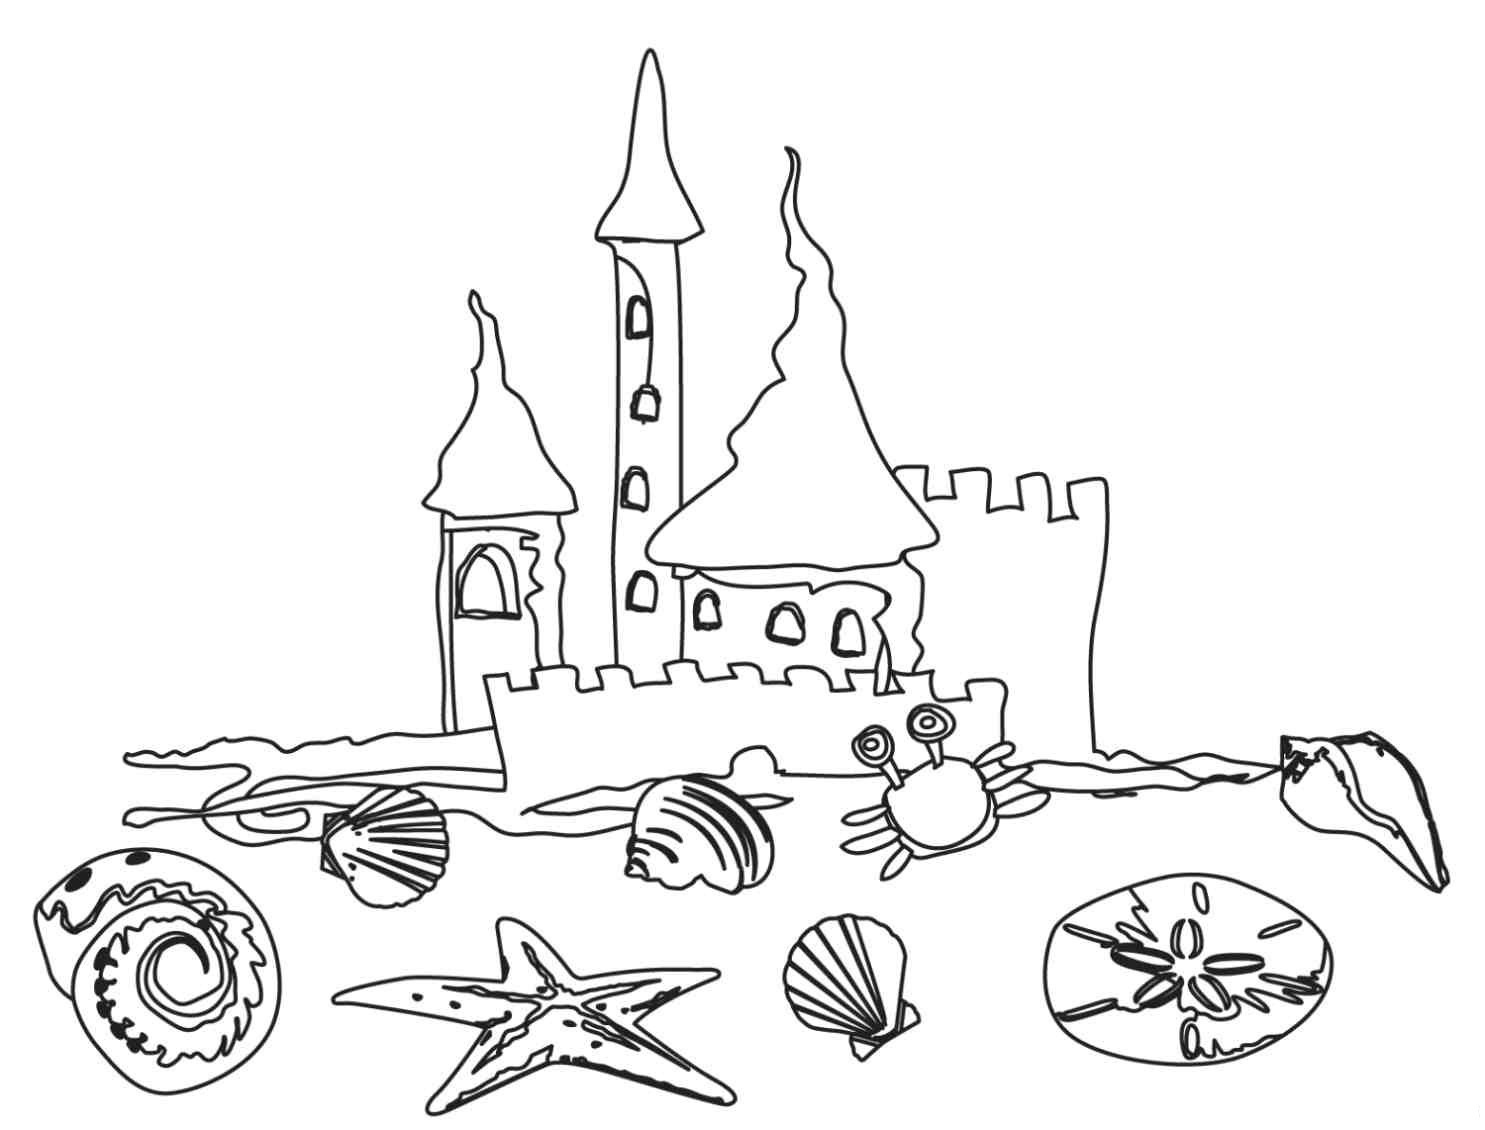 Beach Coloring Pages - Beach Scenes & Activities - Free Printable Beach Coloring Pages